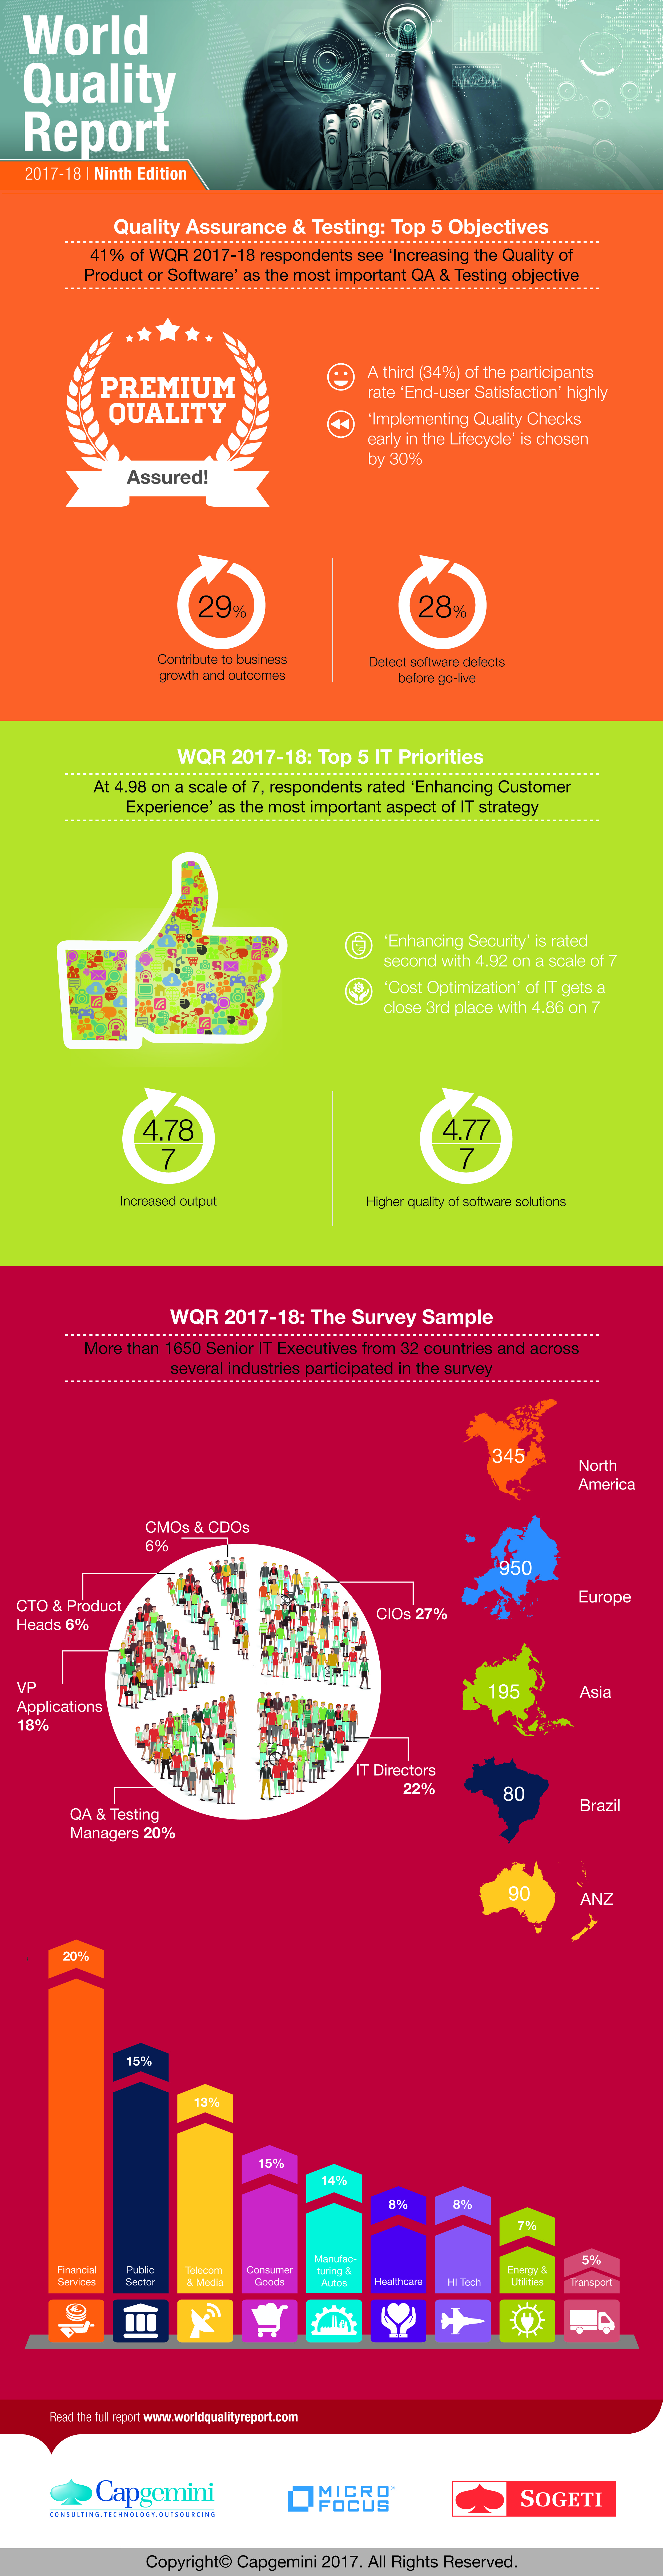 World Quality Report 2017-18 infographic